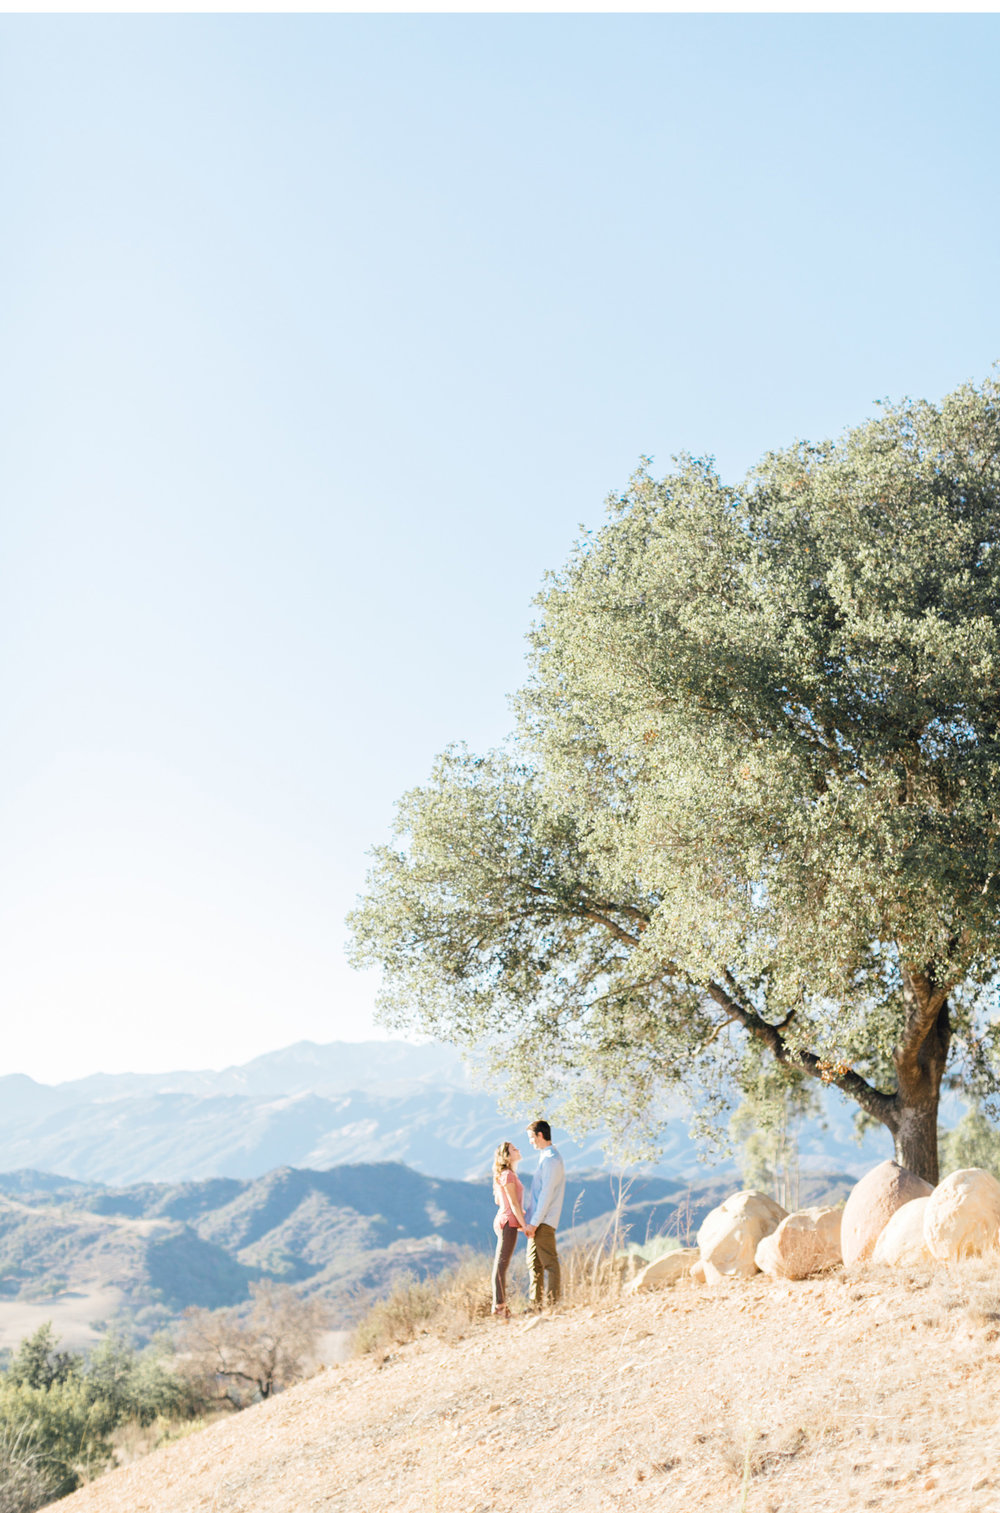 San-Luis-Obispo-Wedding-Photographer-Natalie-Schutt-Photography_14.jpg